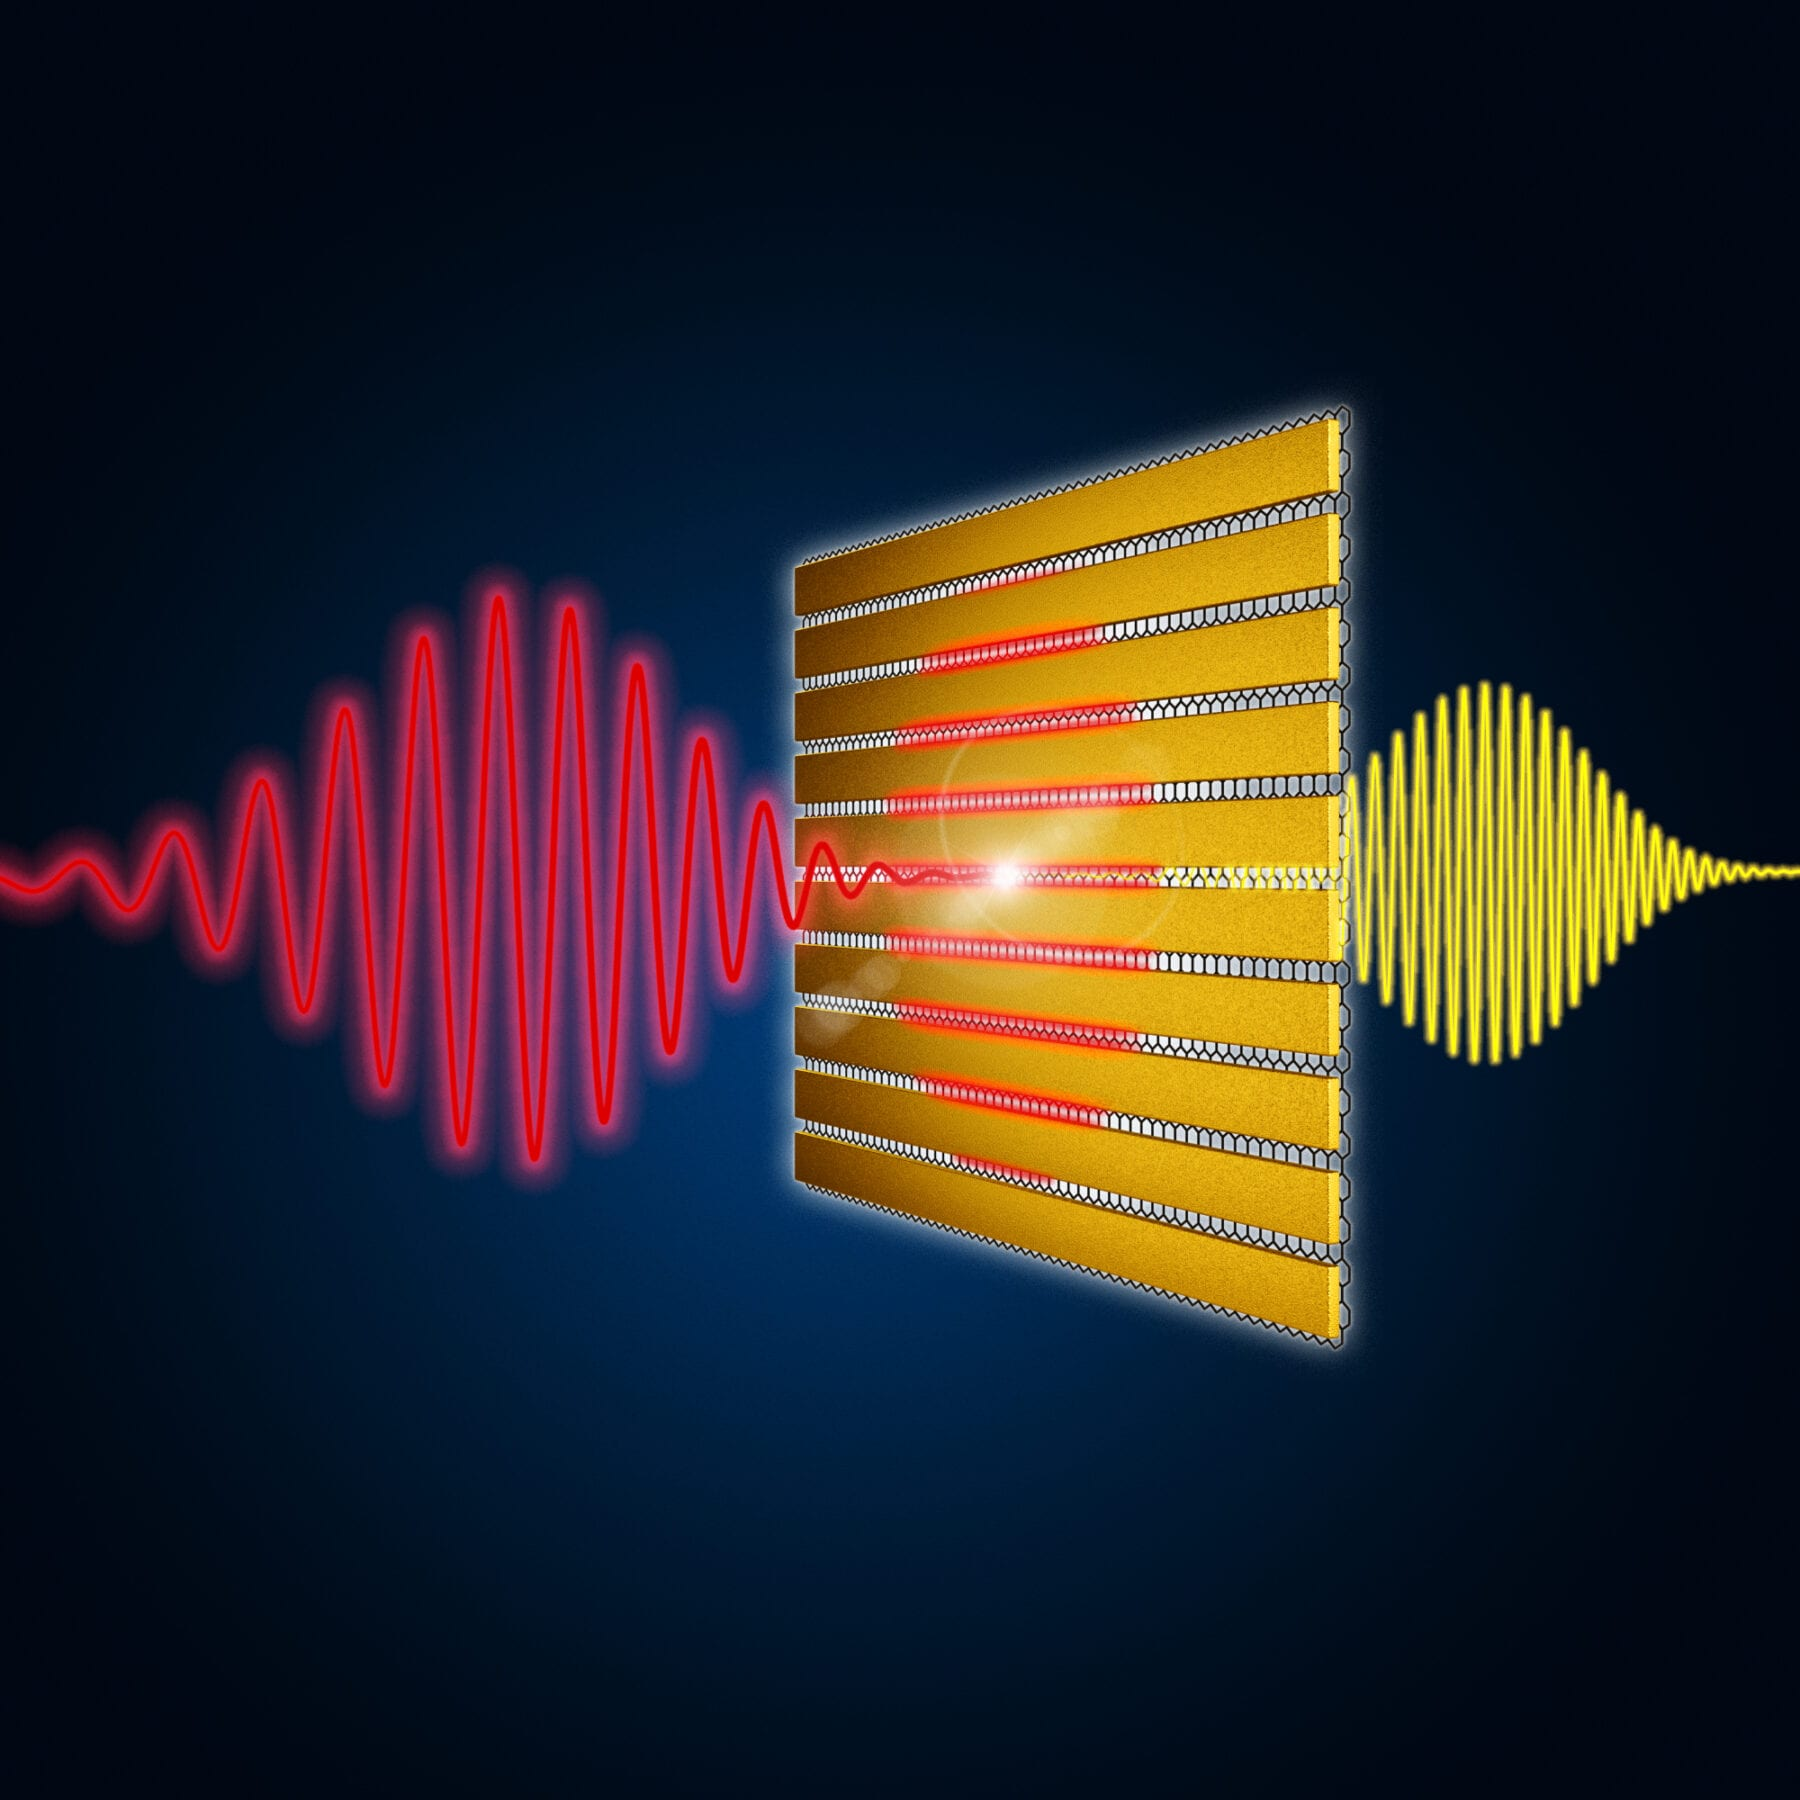 Ultra-thin gold lamellae drastically amplify the incoming terahertz pulses (red) in the underlying graphene layer, enabling efficient frequency multiplication. Image: HZDR/Werkstatt X